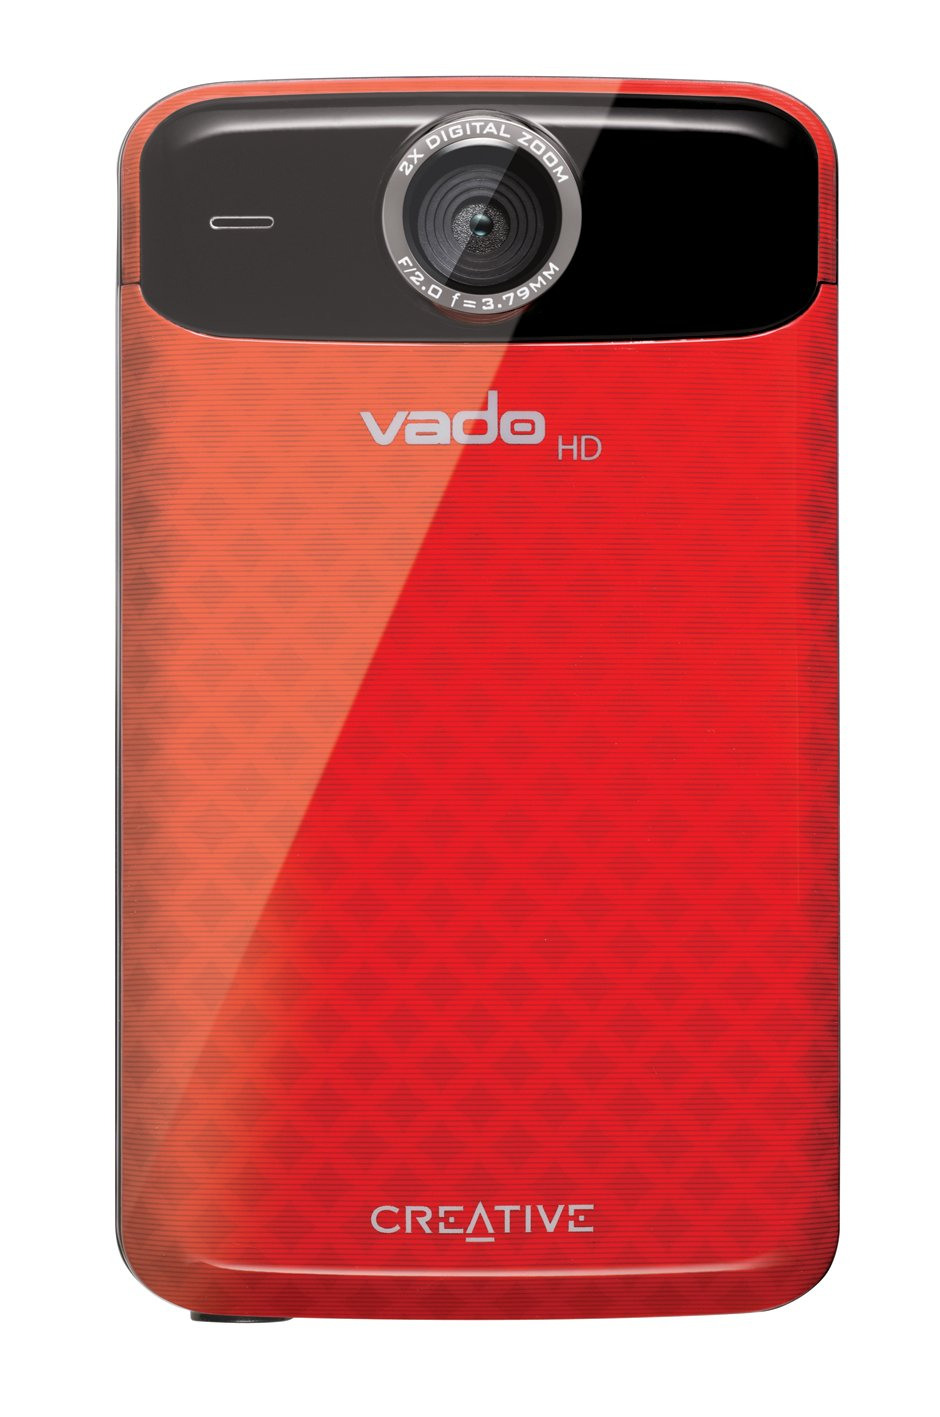 Amazon.com : Creative Labs Vado VF0624-RD HD Pocket Video Camcorder 3rd  Generation, 120 Minutes (Red) - NEWEST MODEL (Discontinued by Manufacturer)  : Camera ...